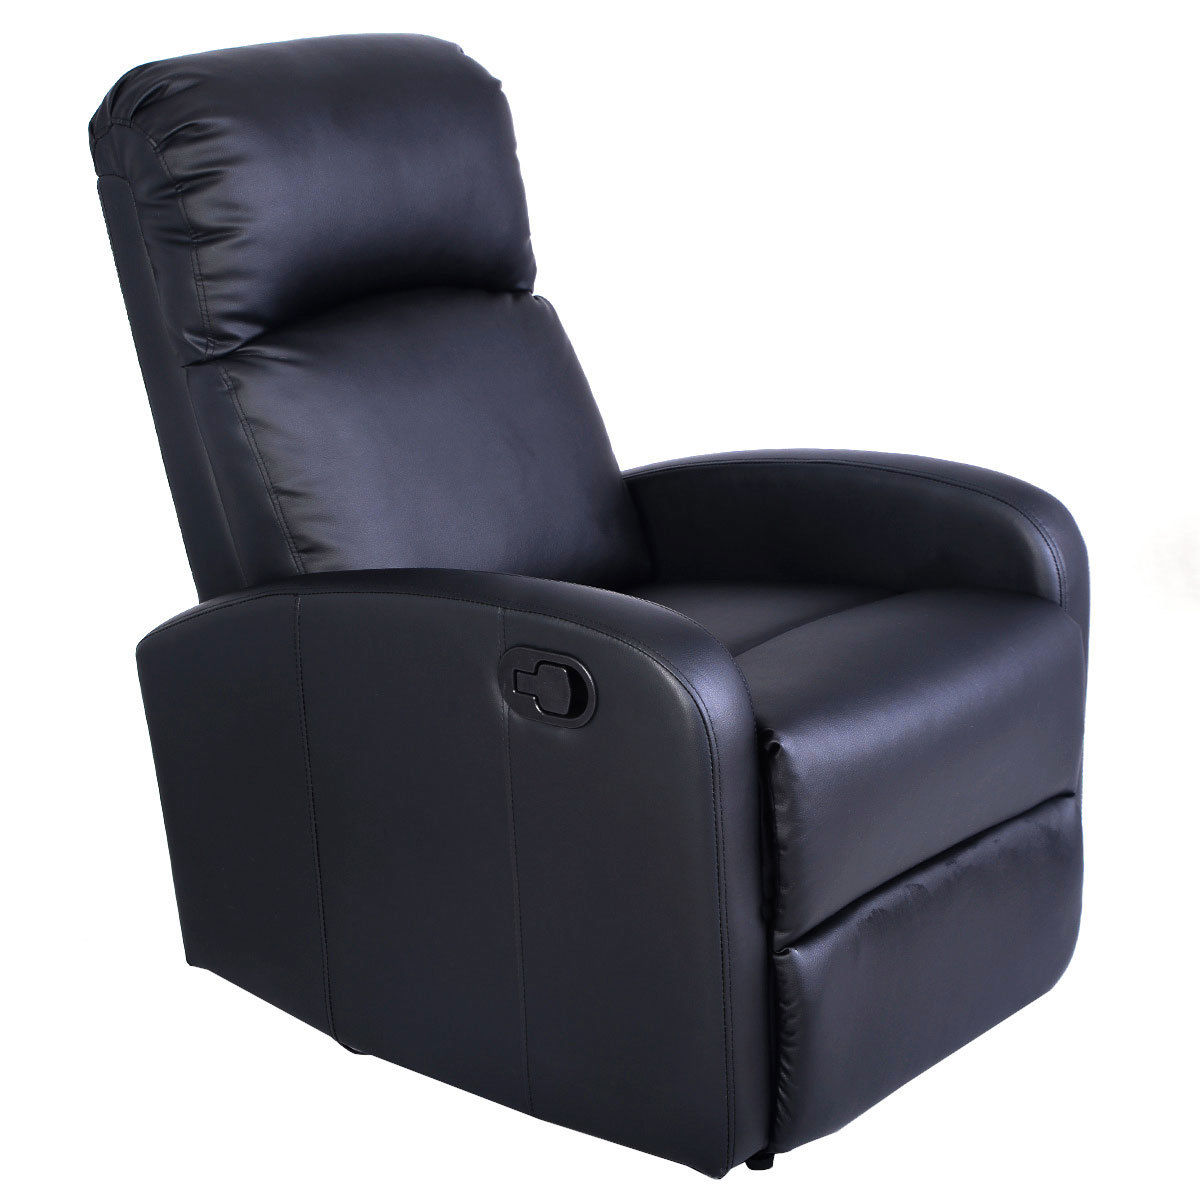 Genial Costway Manual Recliner Chair Black Lounger Leather Sofa Seat Home Theater